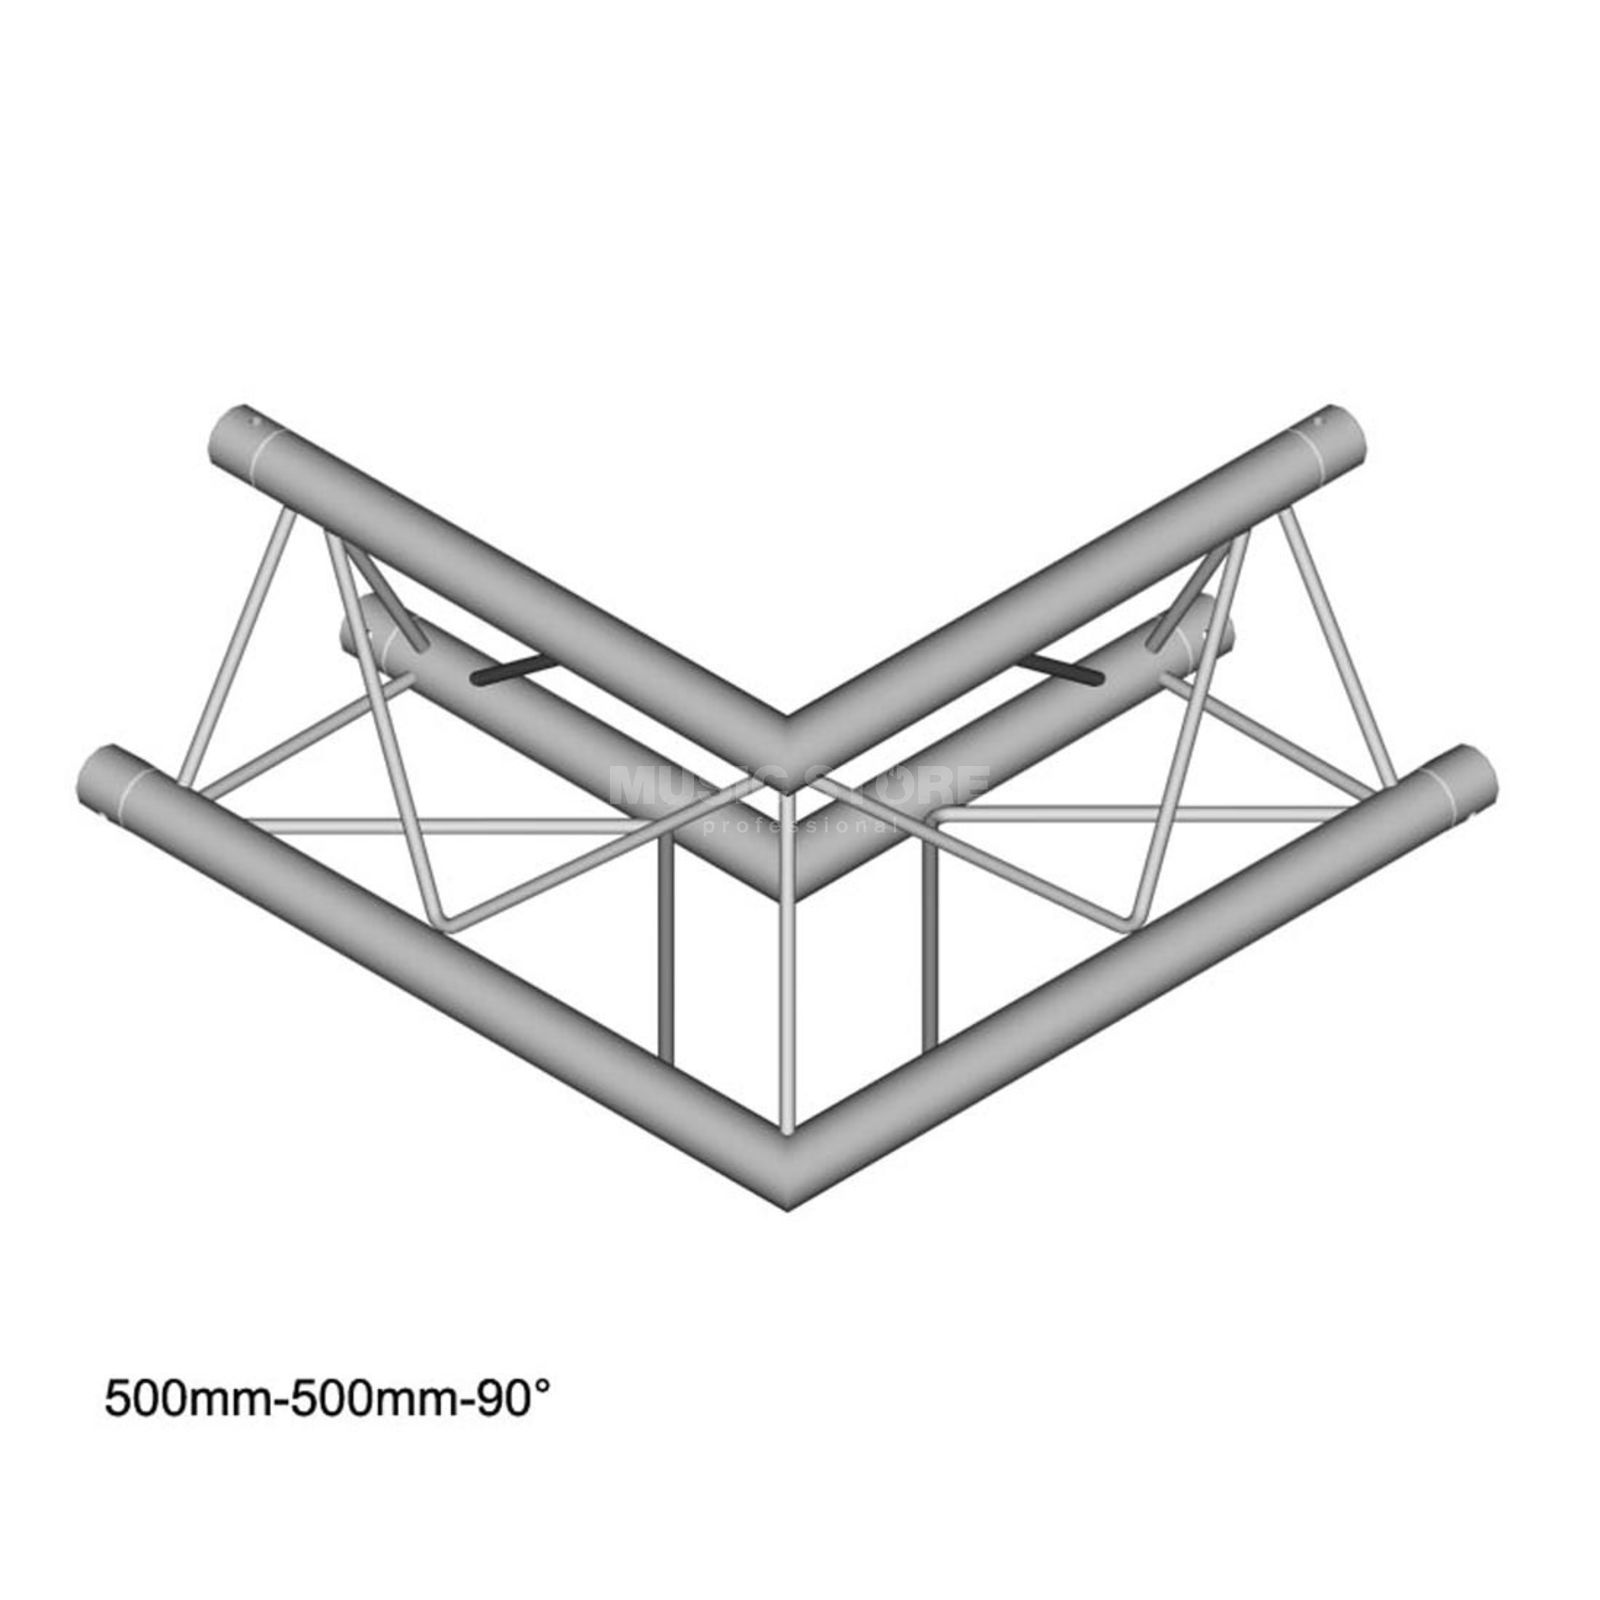 DURATRUSS DT 23 C21-L90, 3-Point Truss 90° Corner, 2-Way Produktbillede